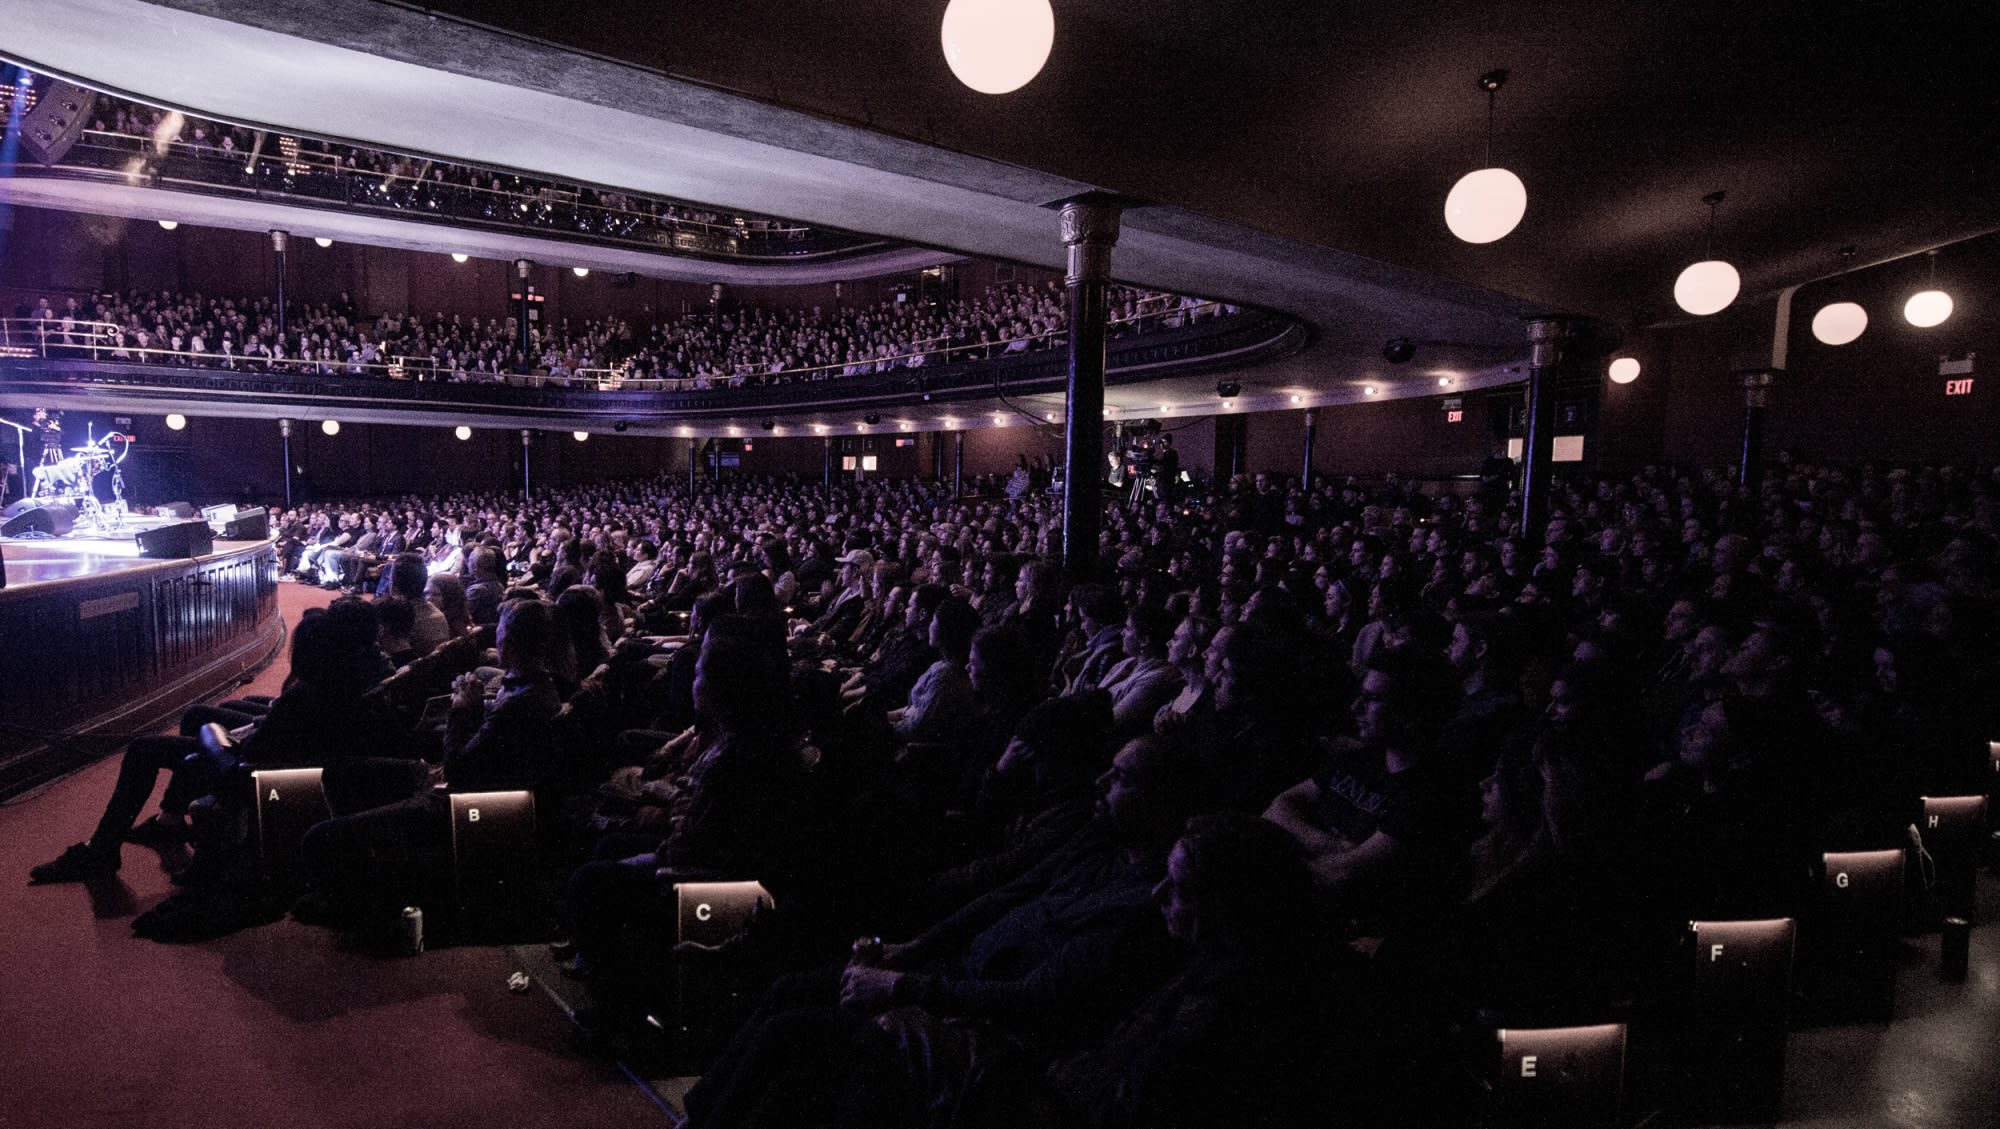 A sold out crowd attends a Live at Massey Hall concert